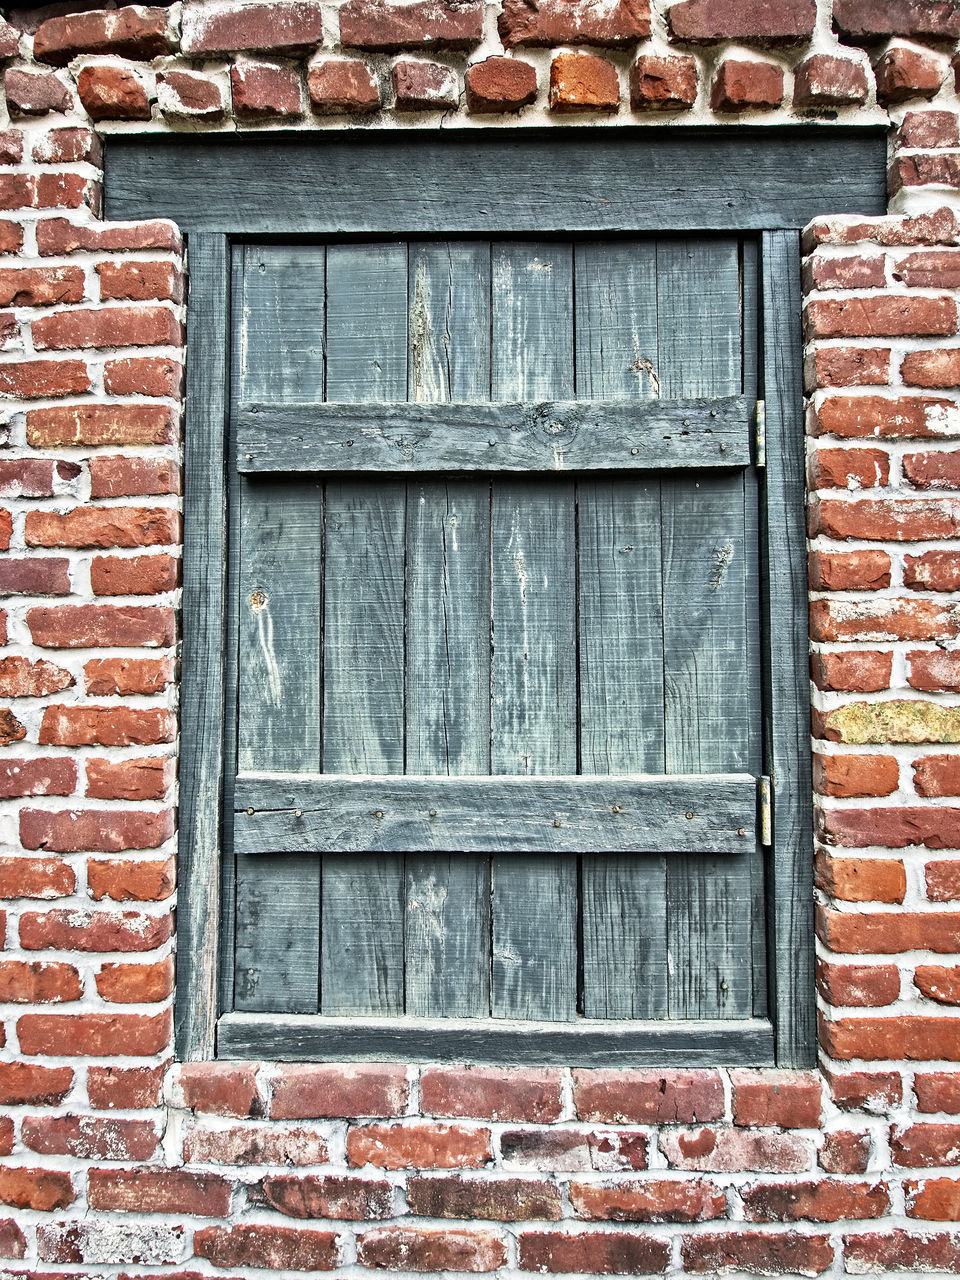 architecture, built structure, building exterior, brick wall, window, outdoors, day, no people, weathered, full frame, close-up